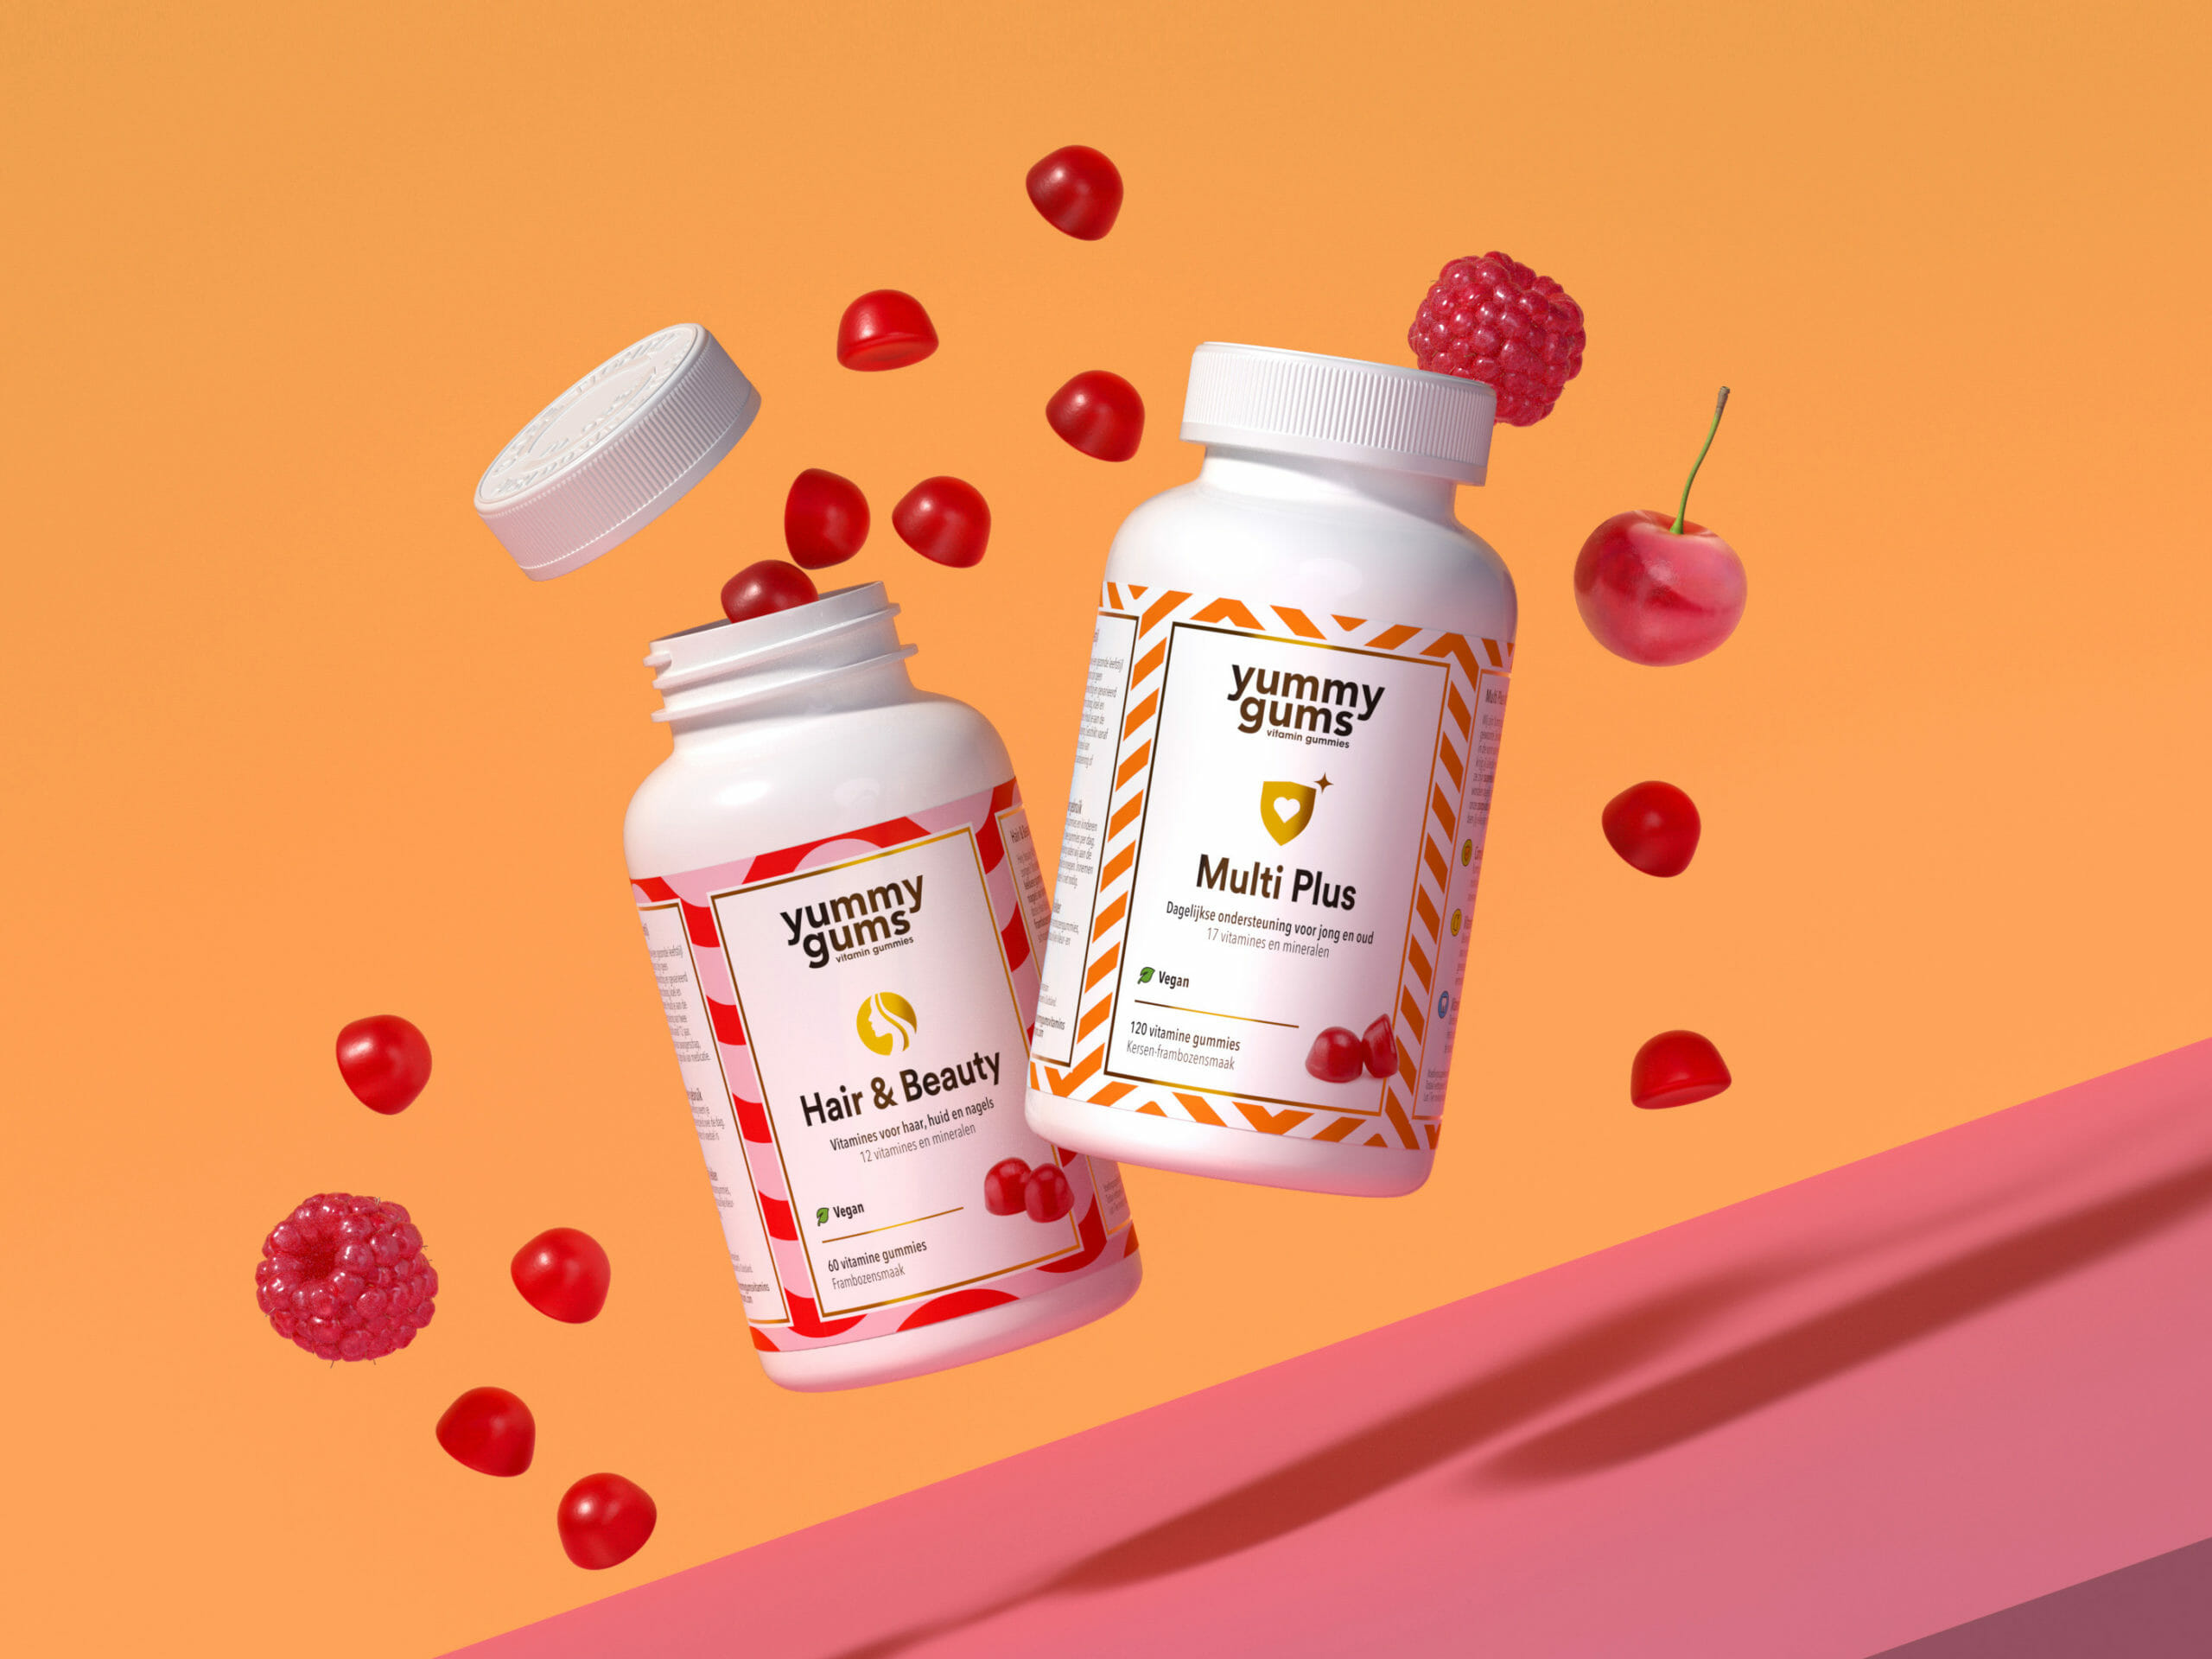 Eating vitamin gummies is so much fun. Everyday your essential vitamins to stay healthy in a yummy gummie